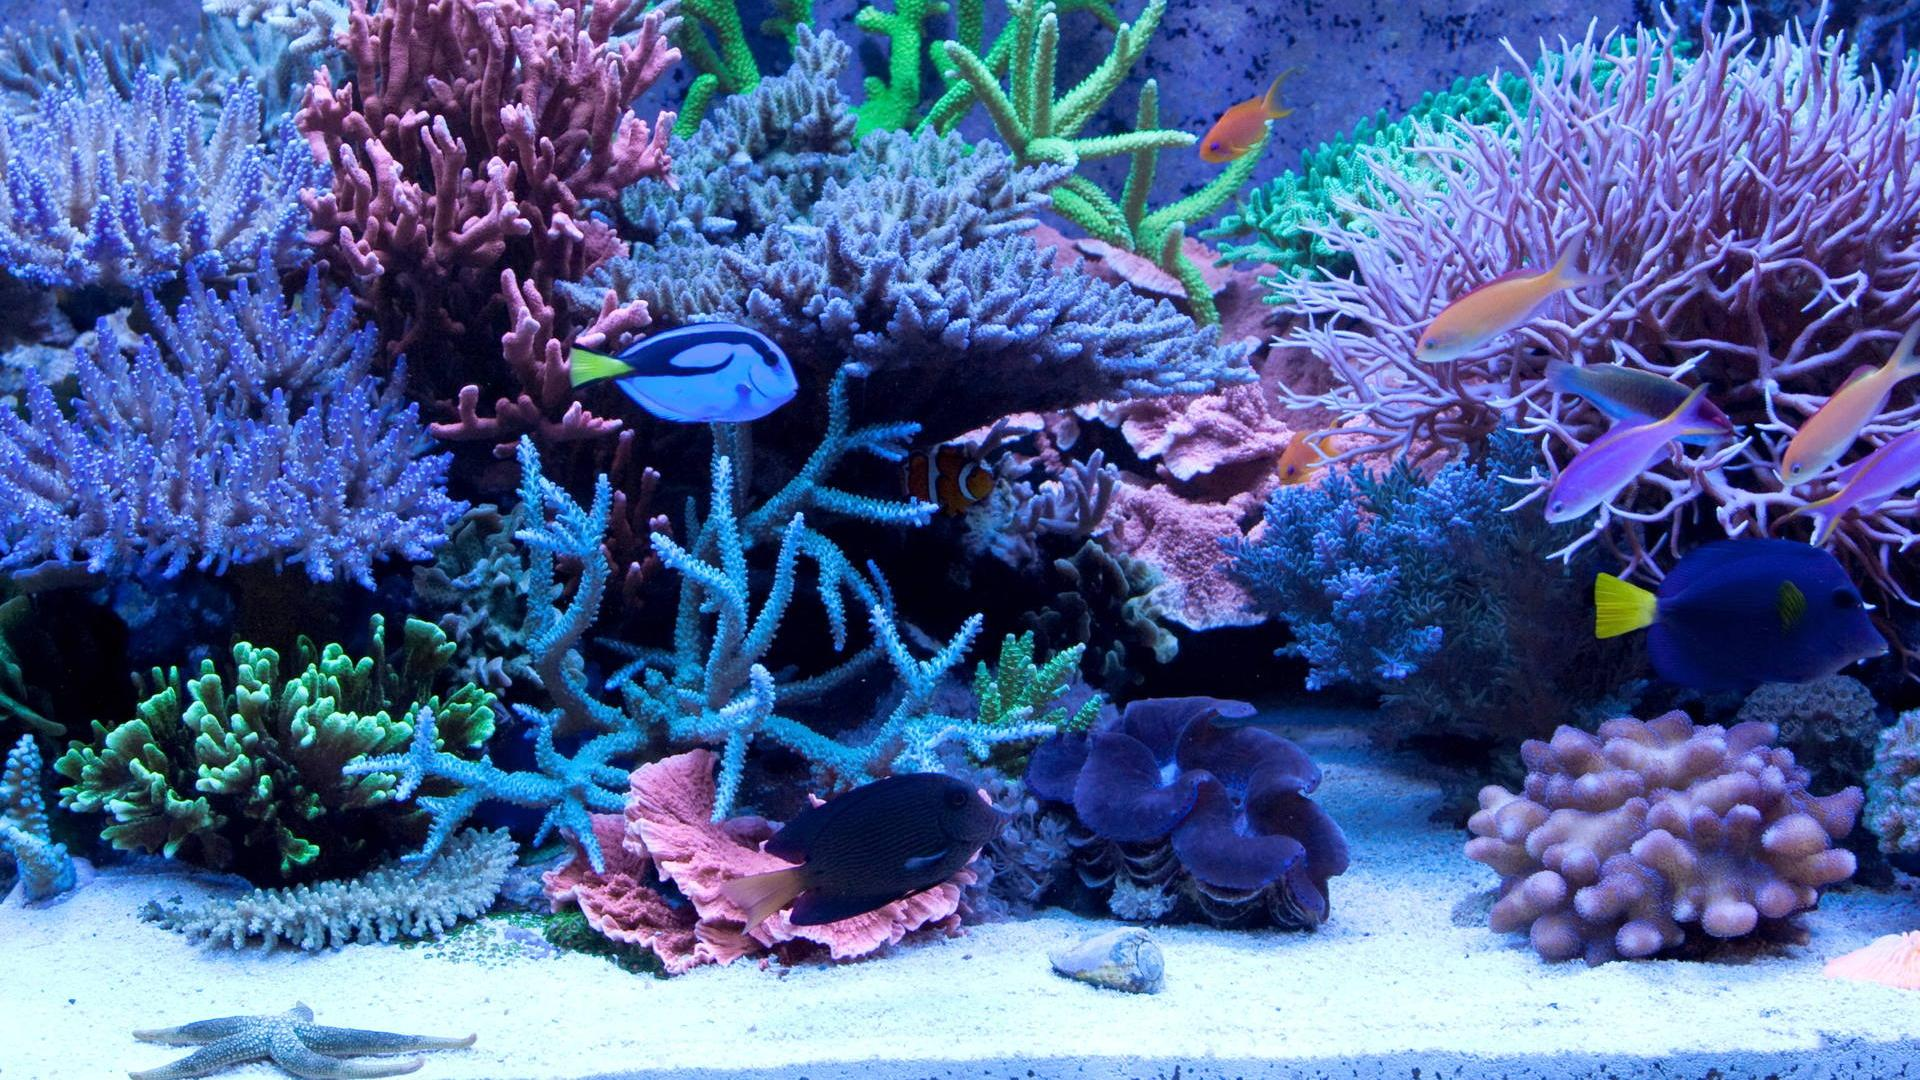 Home preis aquaristik relaunched for Aquaristik katalog